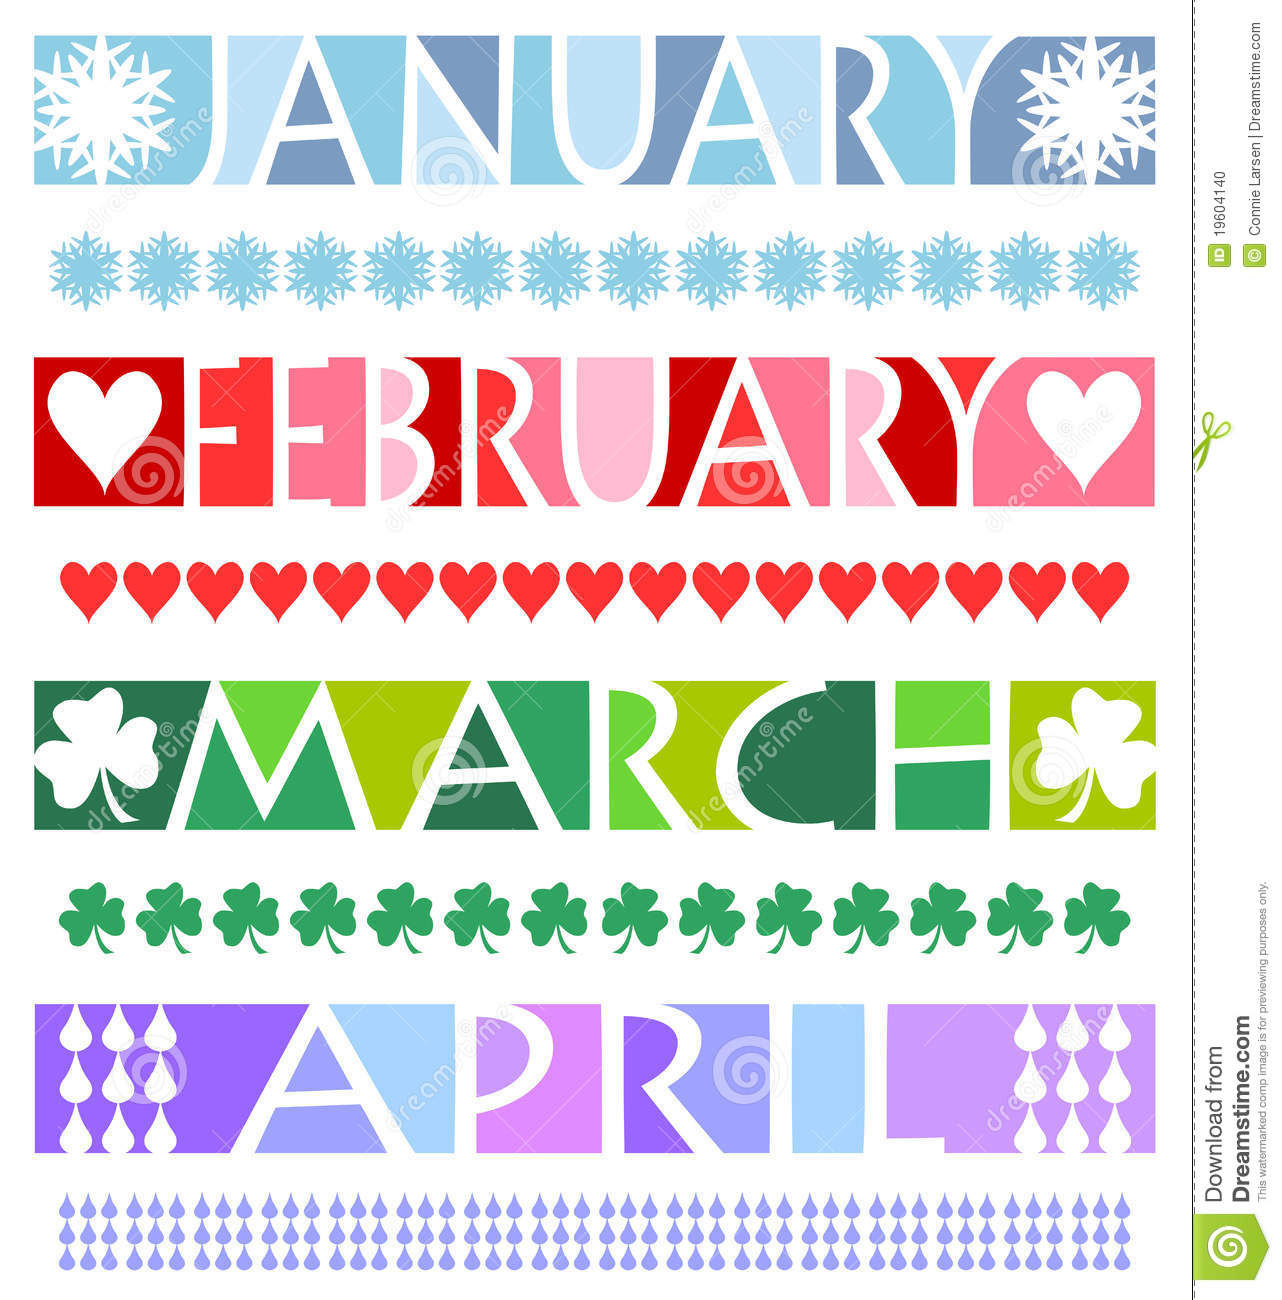 April clipart borders clipart freeuse stock January border and frame clipart - ClipartFest clipart freeuse stock